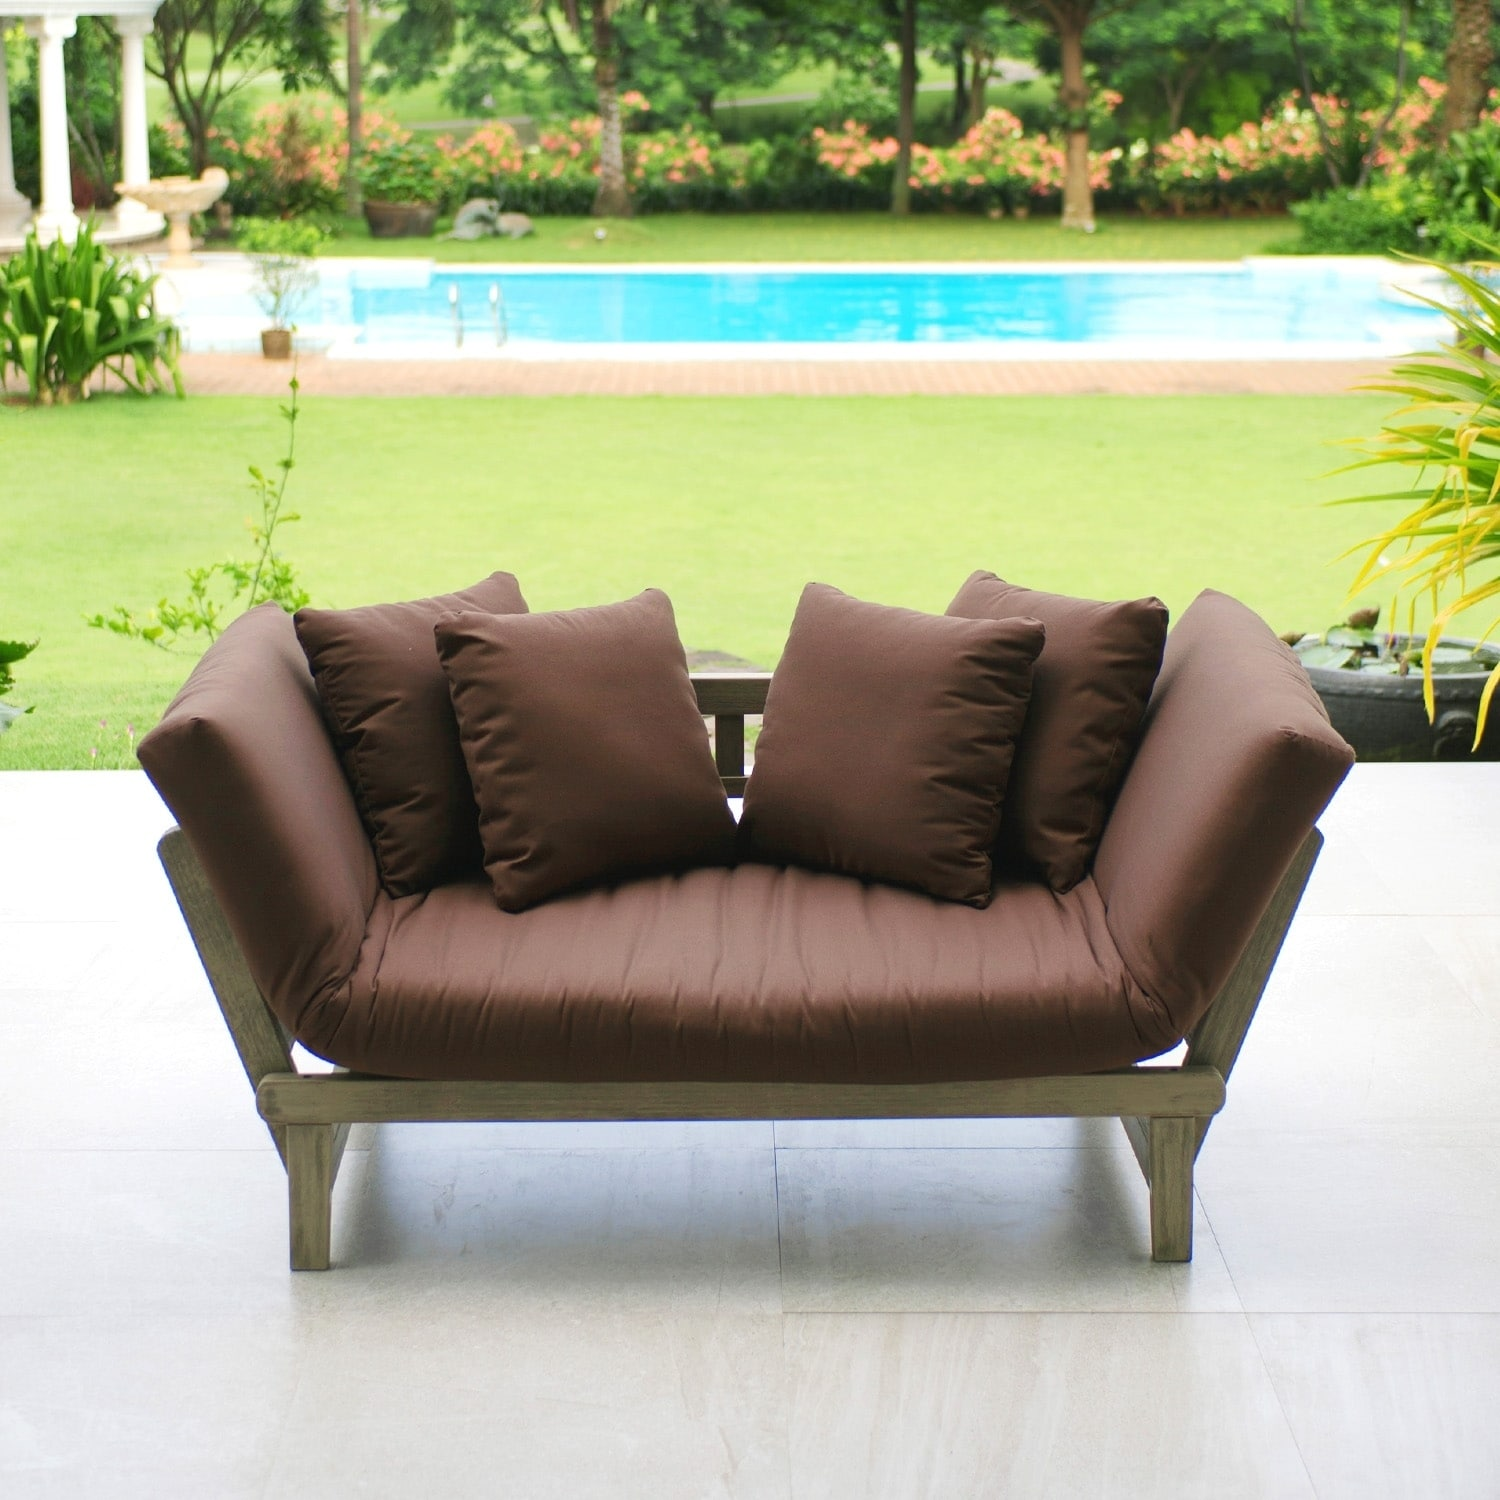 Cambridge Casual  West Lake Convertible Sofa Daybed Brown